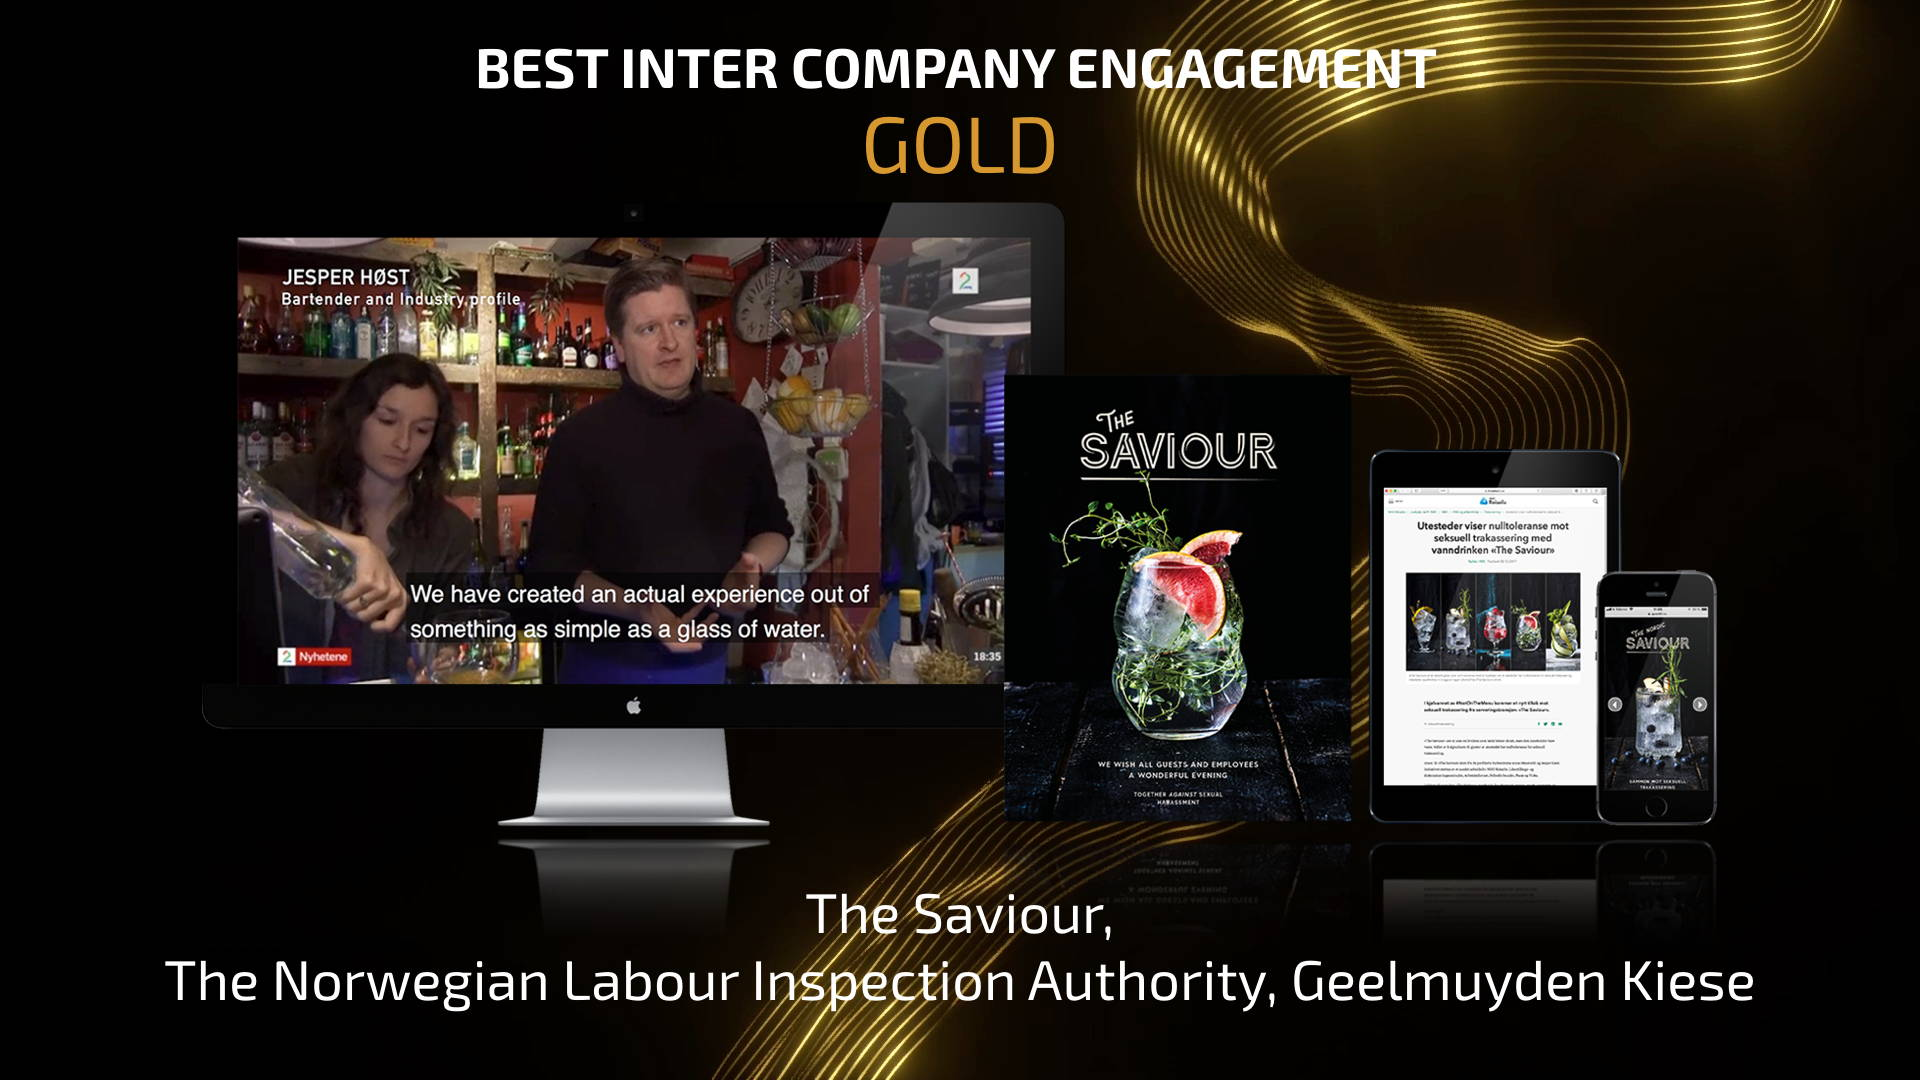 Best Inter Company Engagement - Gold